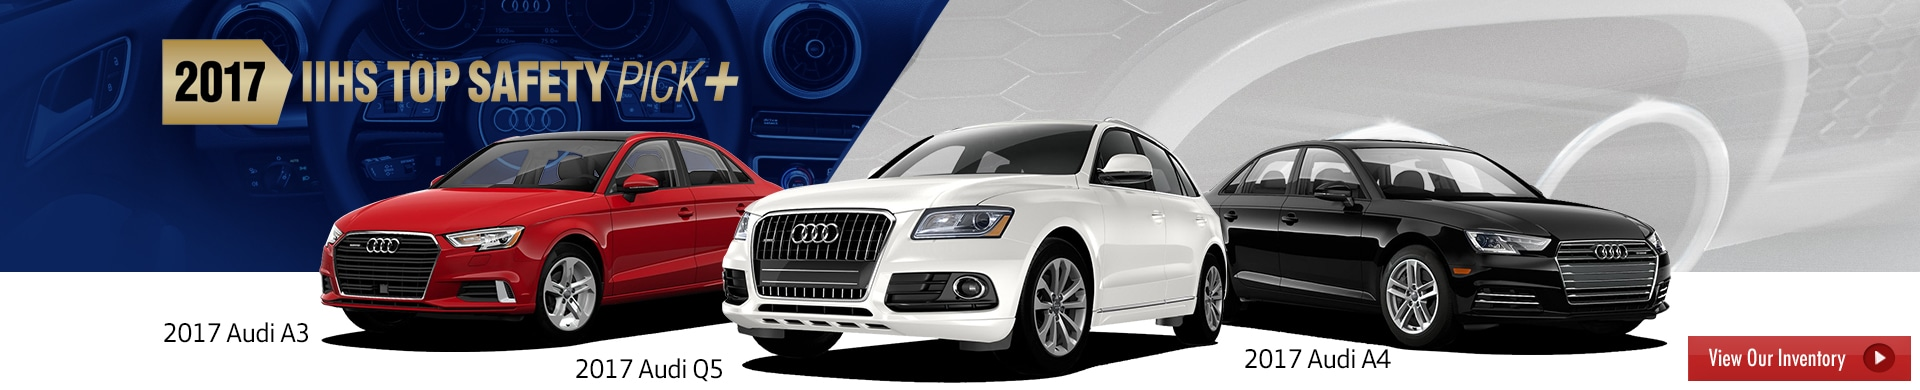 plano finance new specials htm usa lease premium vehicle audi for